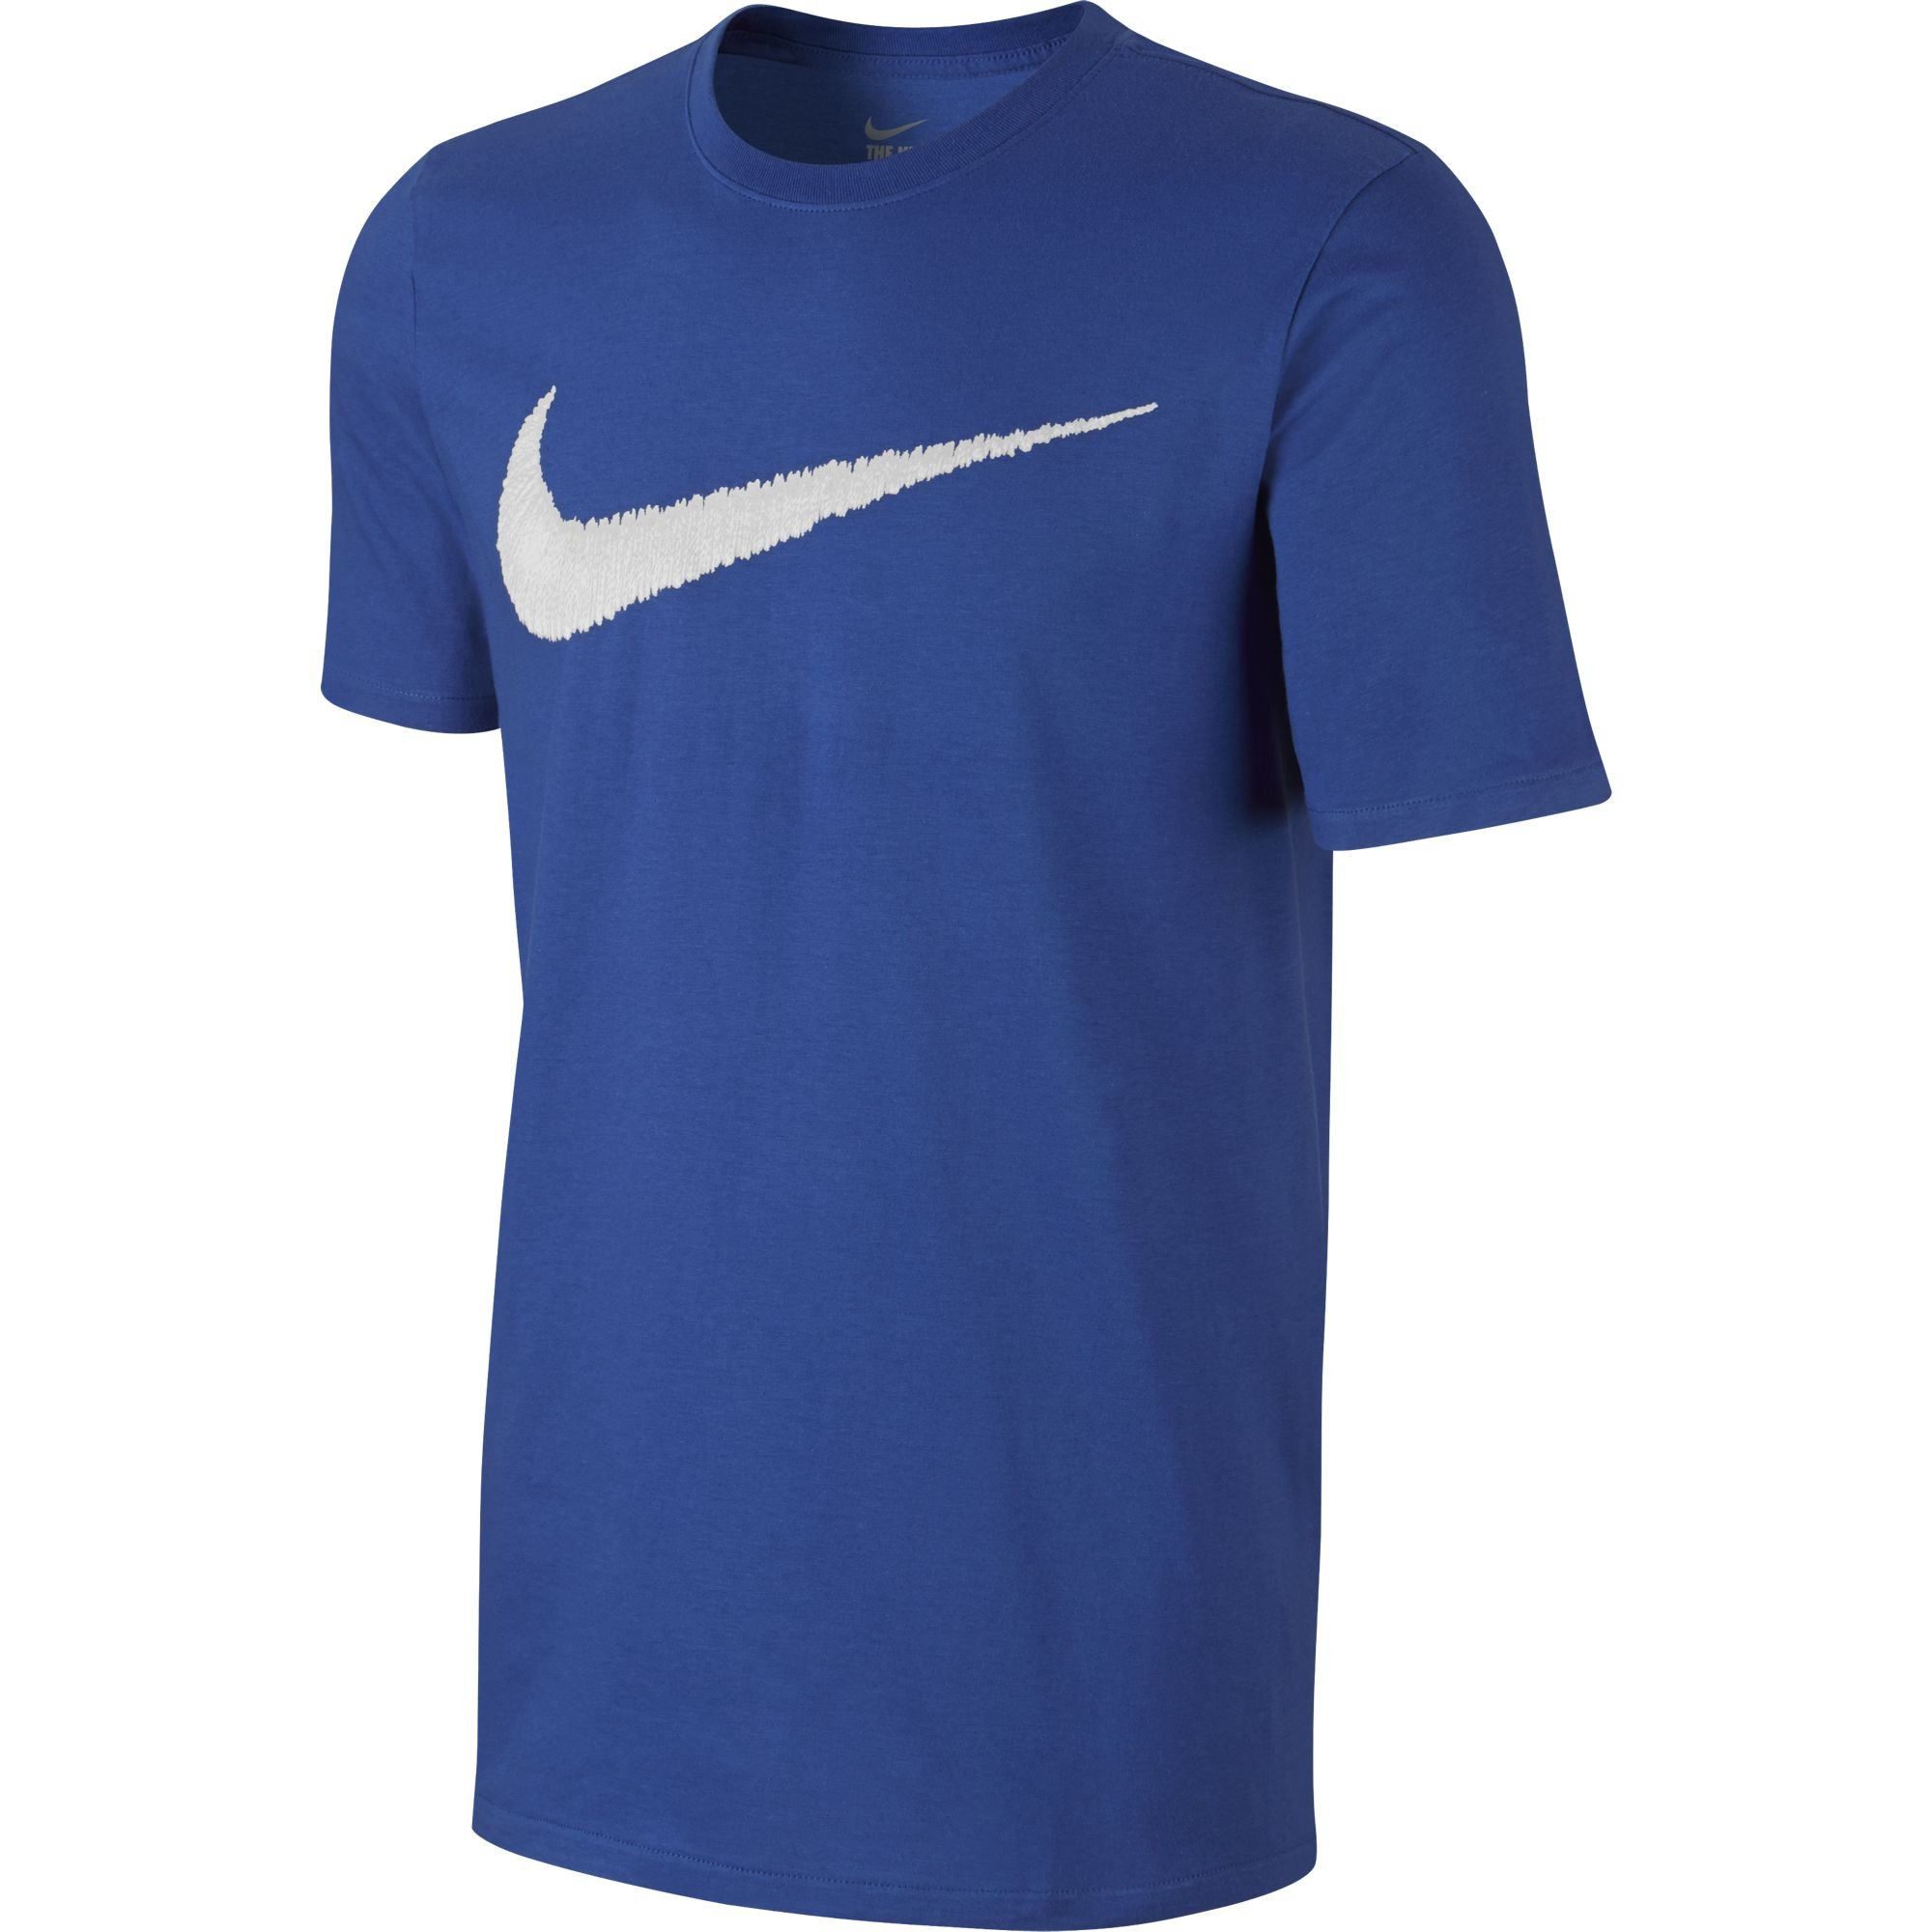 NIKE Sportswear Men's Hangtag Swoosh Tee, Game Royal/White, X-Small